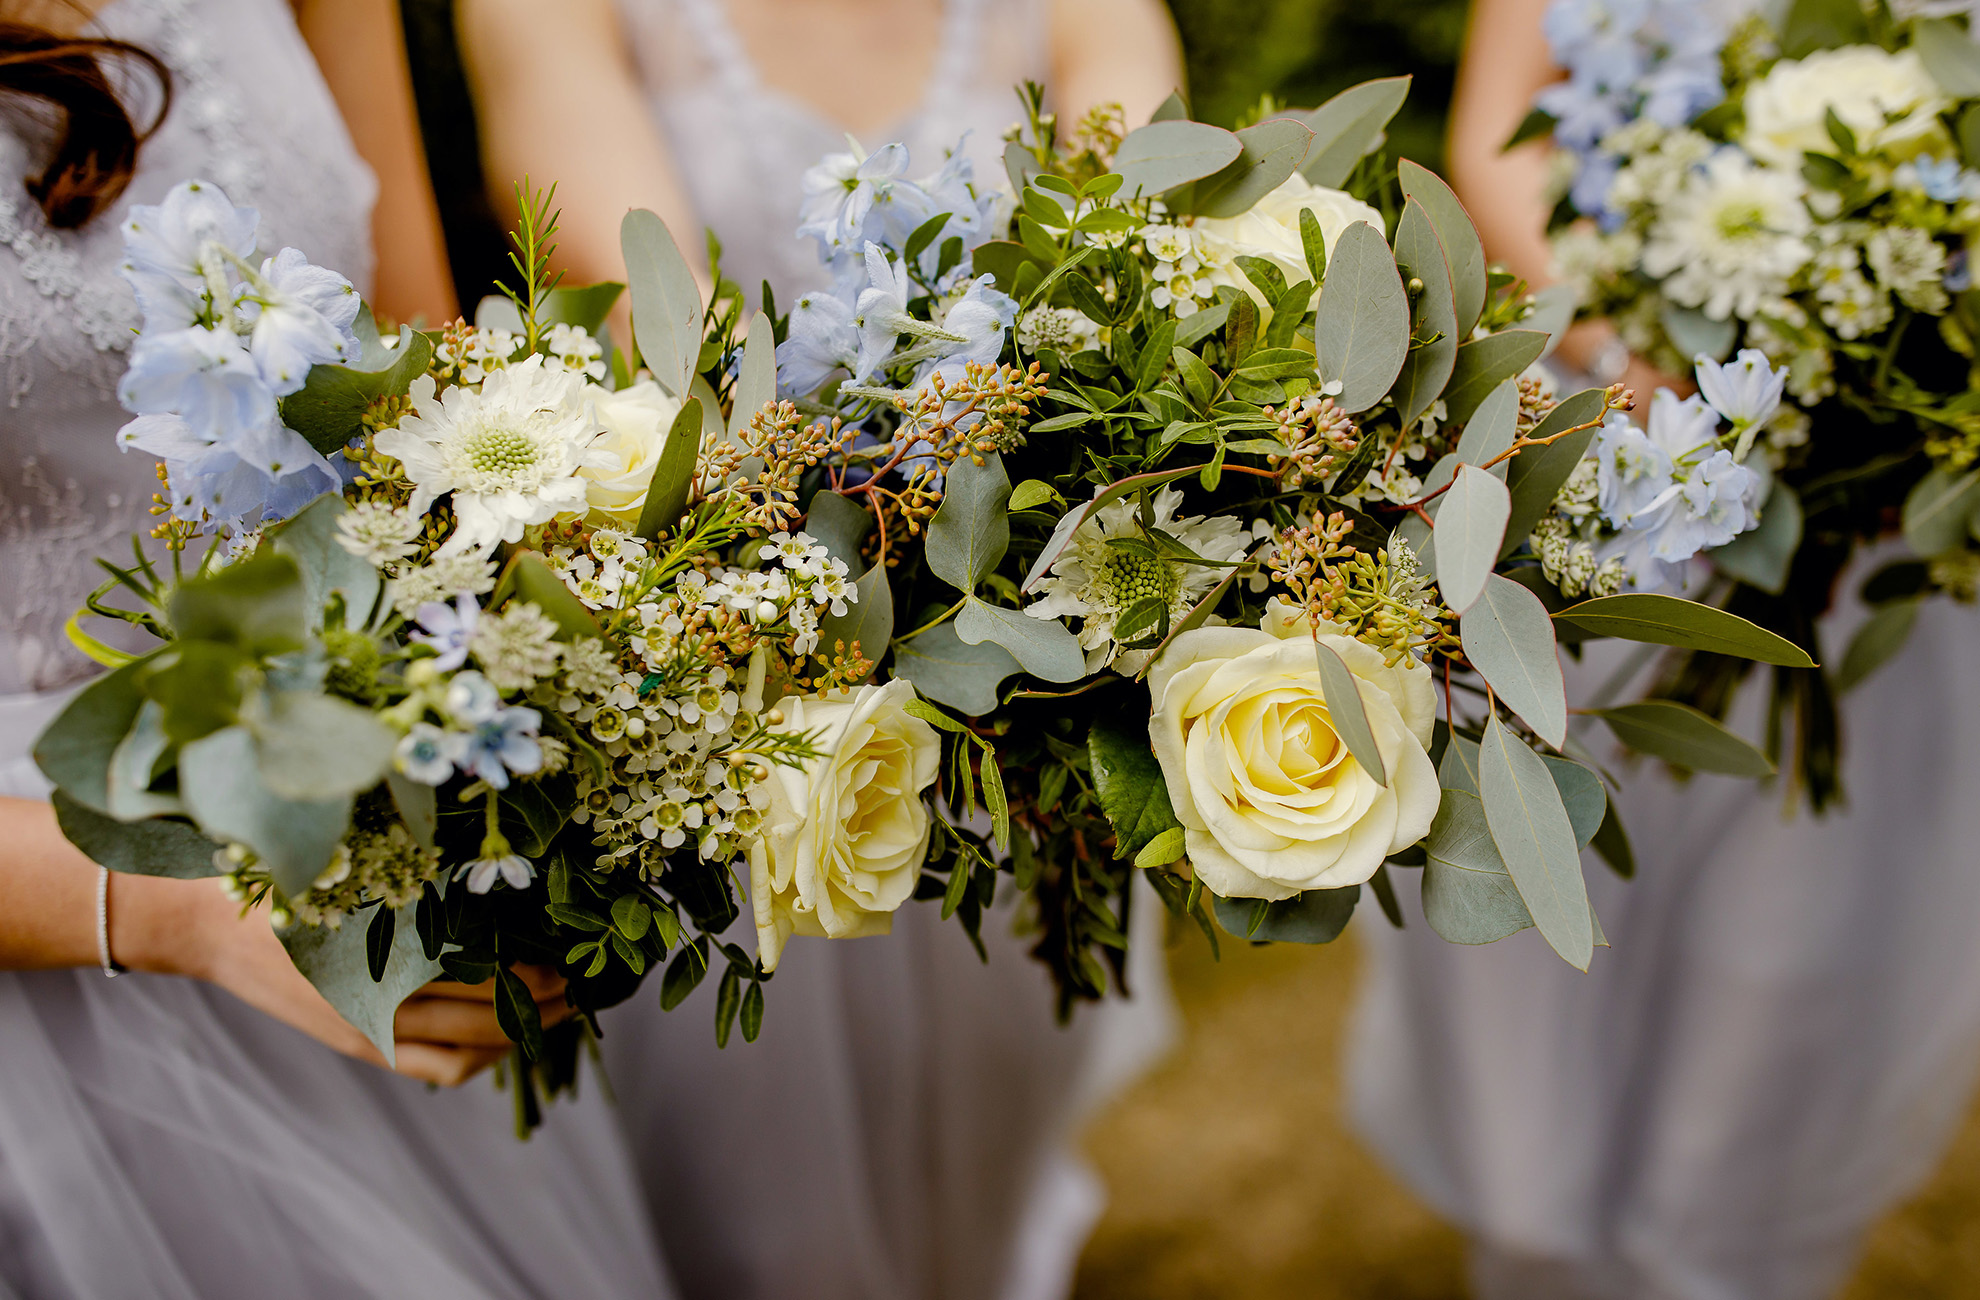 Use wild flowers to add a feeling of spring to your wedding at Combermere Abbey